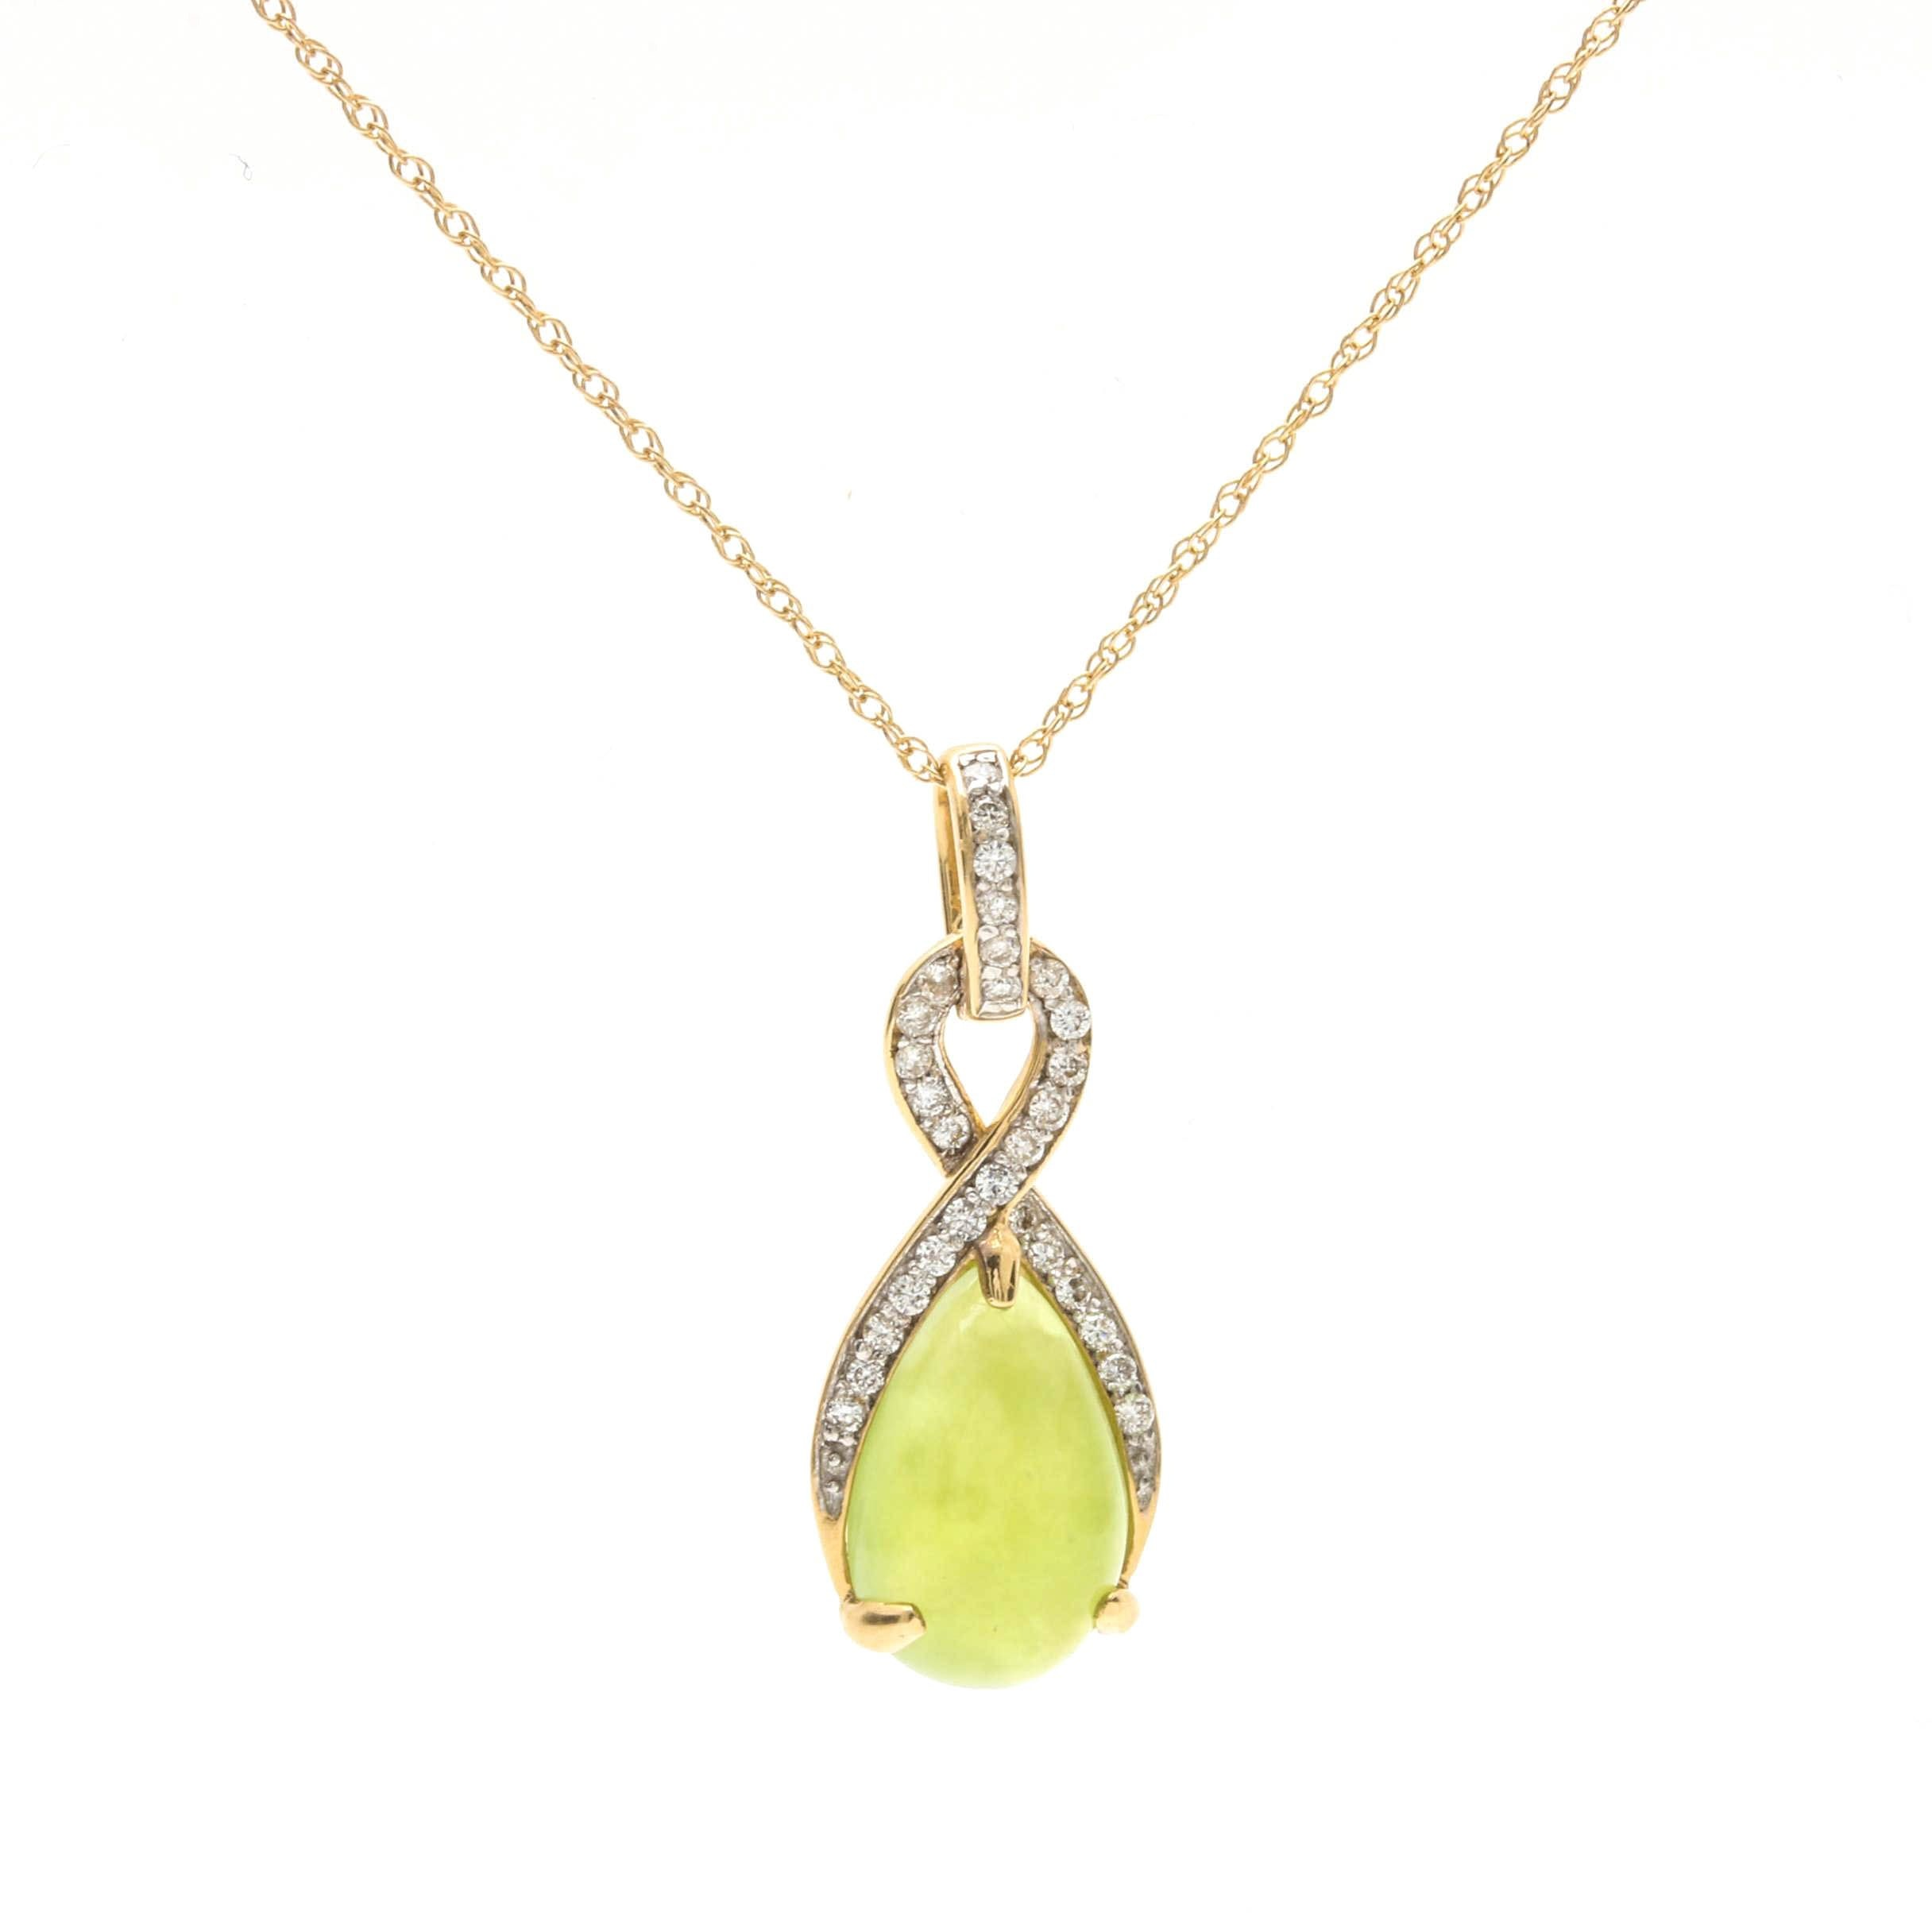 18K Yellow Gold Green Opal and Diamond Pendant on 14K Yellow Gold Chain